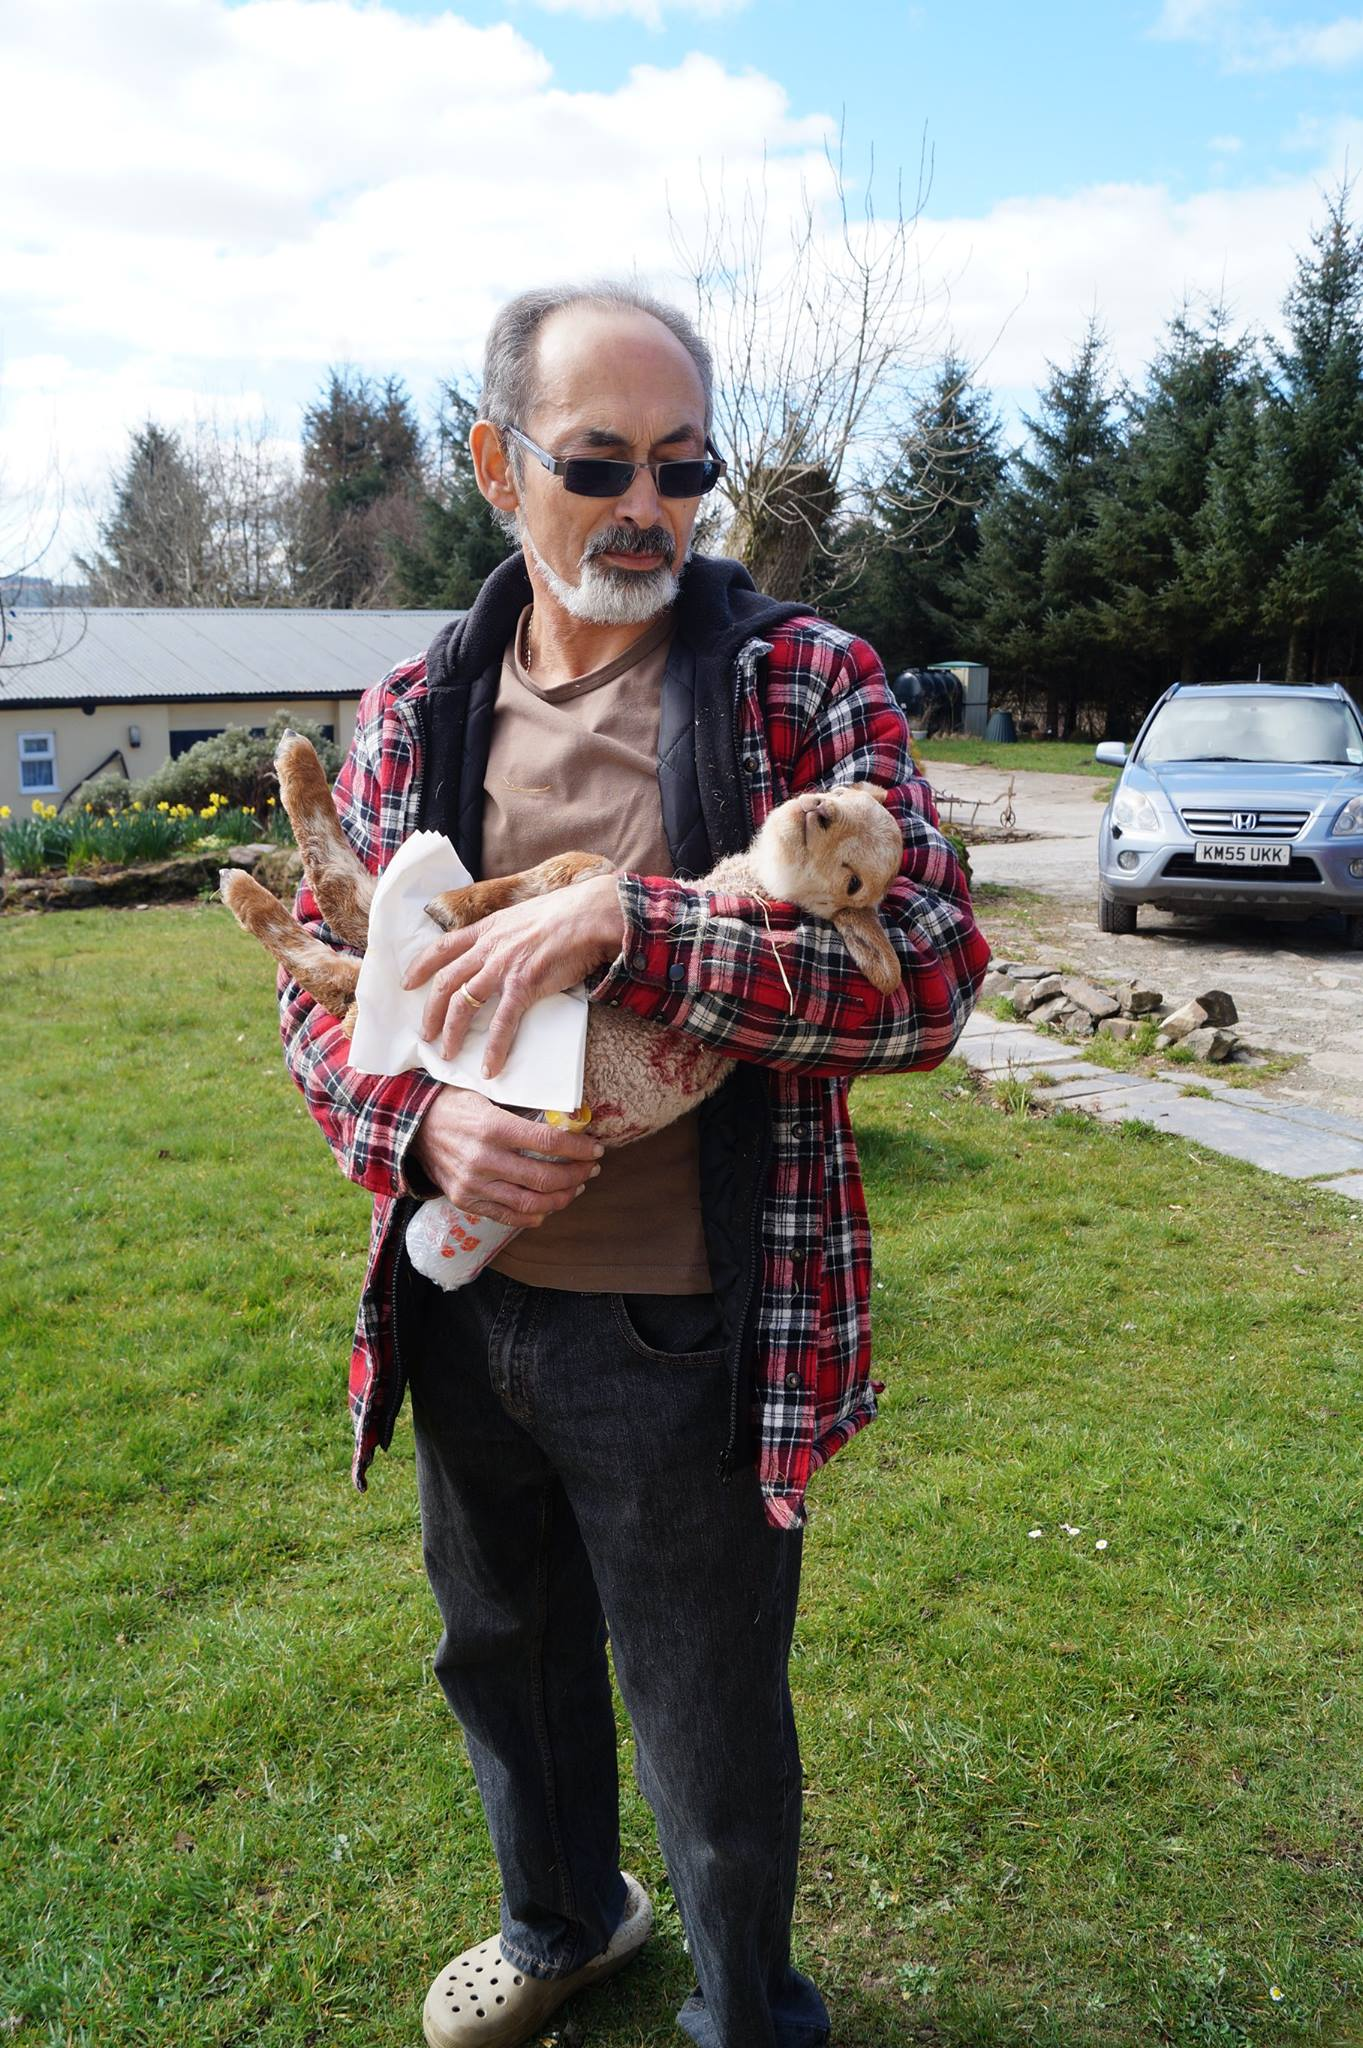 Pepe known also as Joe recently retired from the NHS as a Senior Rehabilitation Engineer.      At grass roots level he was very much involved with the day to day management of adapting wheelchairs to suit the developing needs of patients and inventing new ways to enhance the lives involved.  Trained also as a Hypnotherapist he enjoys assisting individuals to transform their lives.      Joe's many passions include Hypnotherapy, Red squirrel conservation, movies, Thai Chi and taking great care of his tortoises. He is currently taking steps to become an approved a tortoise specialist.    After 50 years of working and gaining huge amounts of skills, qualifications and experience Joe now applies all his gifts in the running of Ascension in the fields retreat and holiday let business. Joe loves taking the time to talk with guests and is often seen laughing in the fields with walkers, holiday makers and with his beloved lambs.    However Joe loves to work outside and at present is learning the skills of land management and rearing his new sheep, the 4 Dames.  Judi, Maggie, Helen and Elizabeth.      He is very much a hands on person and will often been seen applying his many skills to the continual development of our beautiful home and business. Joes work experience in Management, Engineering, Mechanics and Electronics to name just a few of his talents, comes in handy in dealing with the joys and tribulations of looking after such a venture as this.    Joe has deep insights into   humanity and takes his role as a Hypnotherapist very seriously. Given the opportunity Joe will help you create powerful change through his Hypnotherapy sessions.